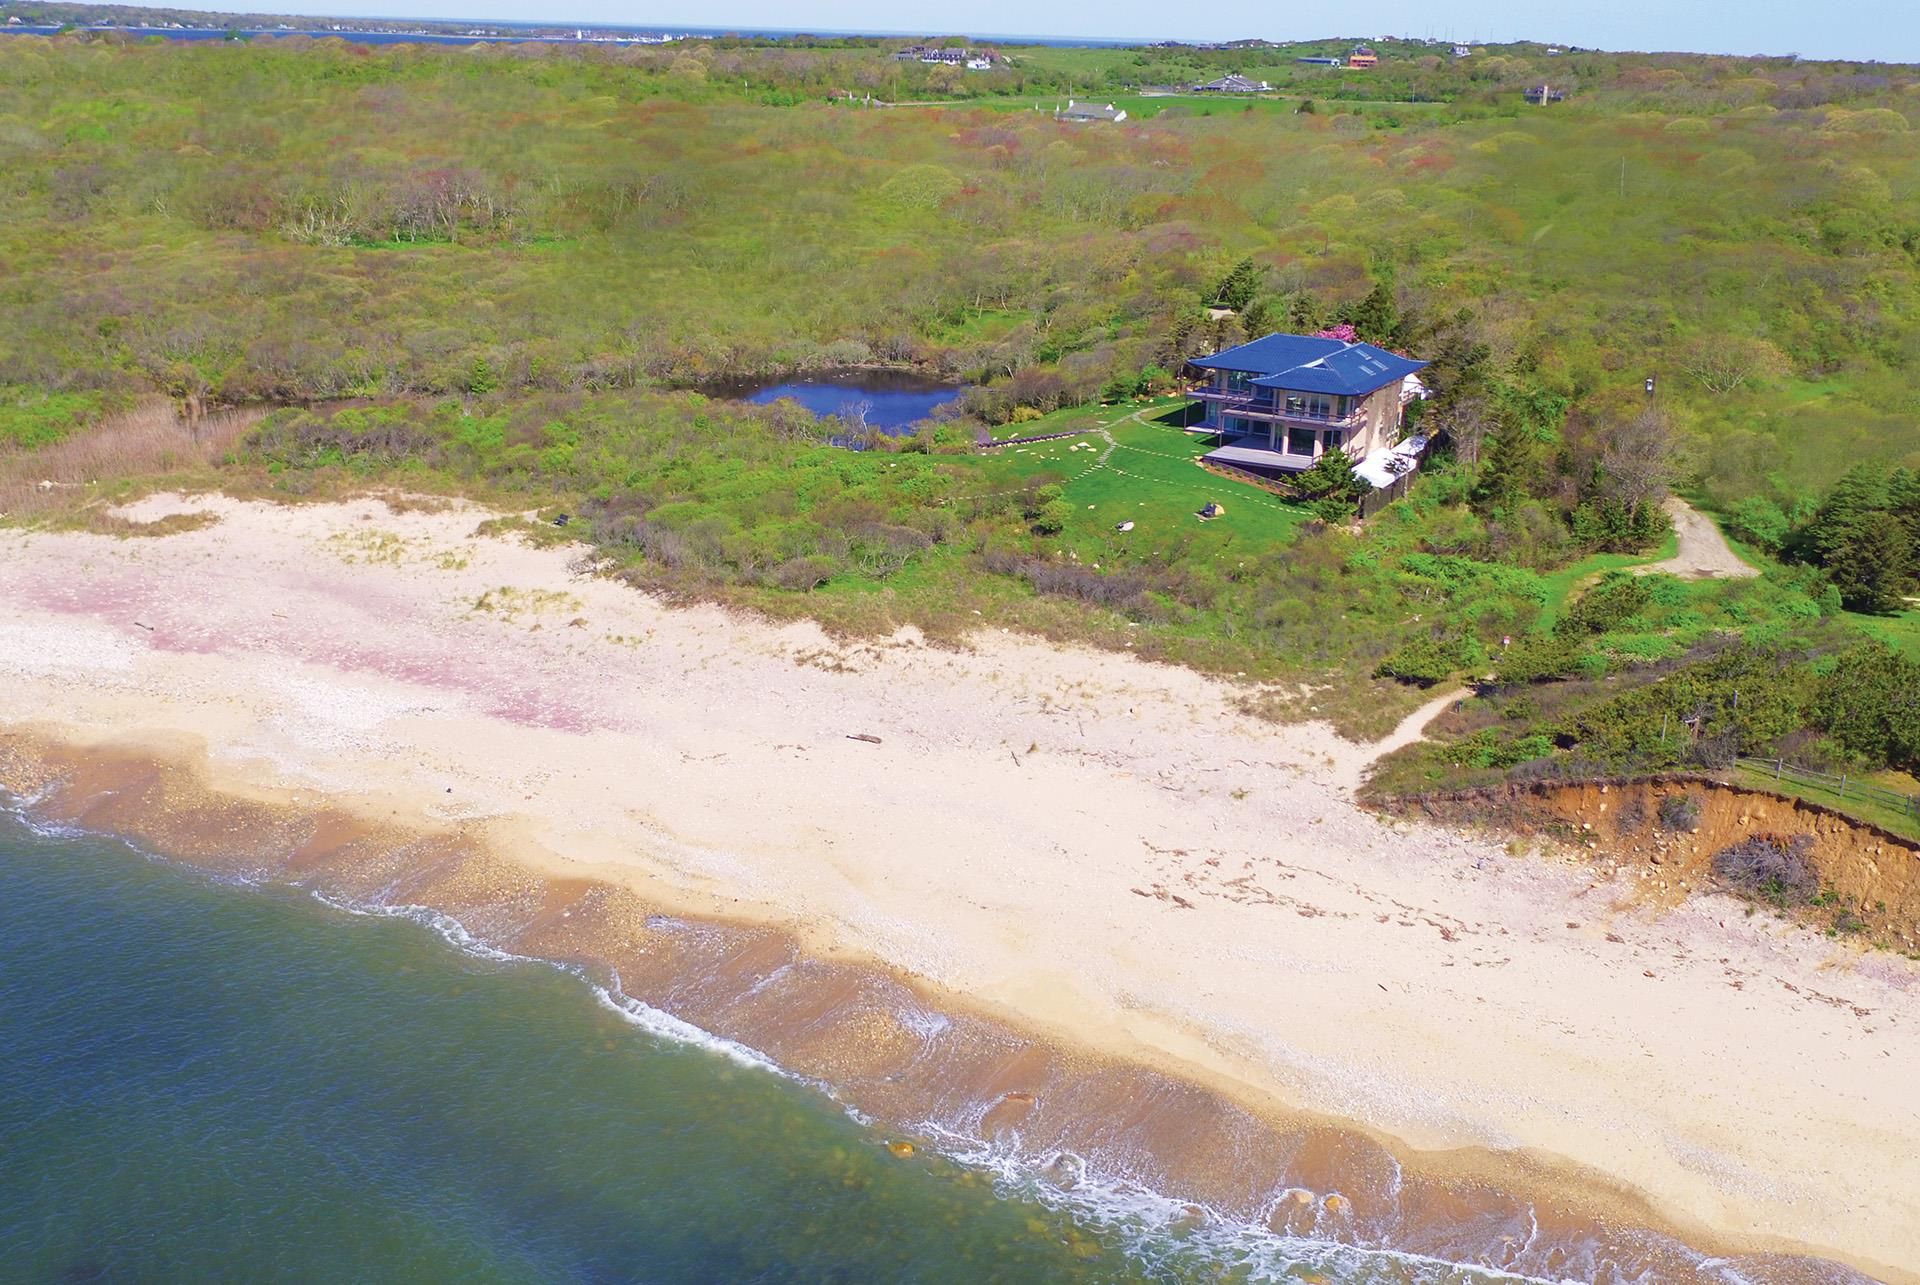 Montauk Oceanfront Paradise, 36 acres of Private Land